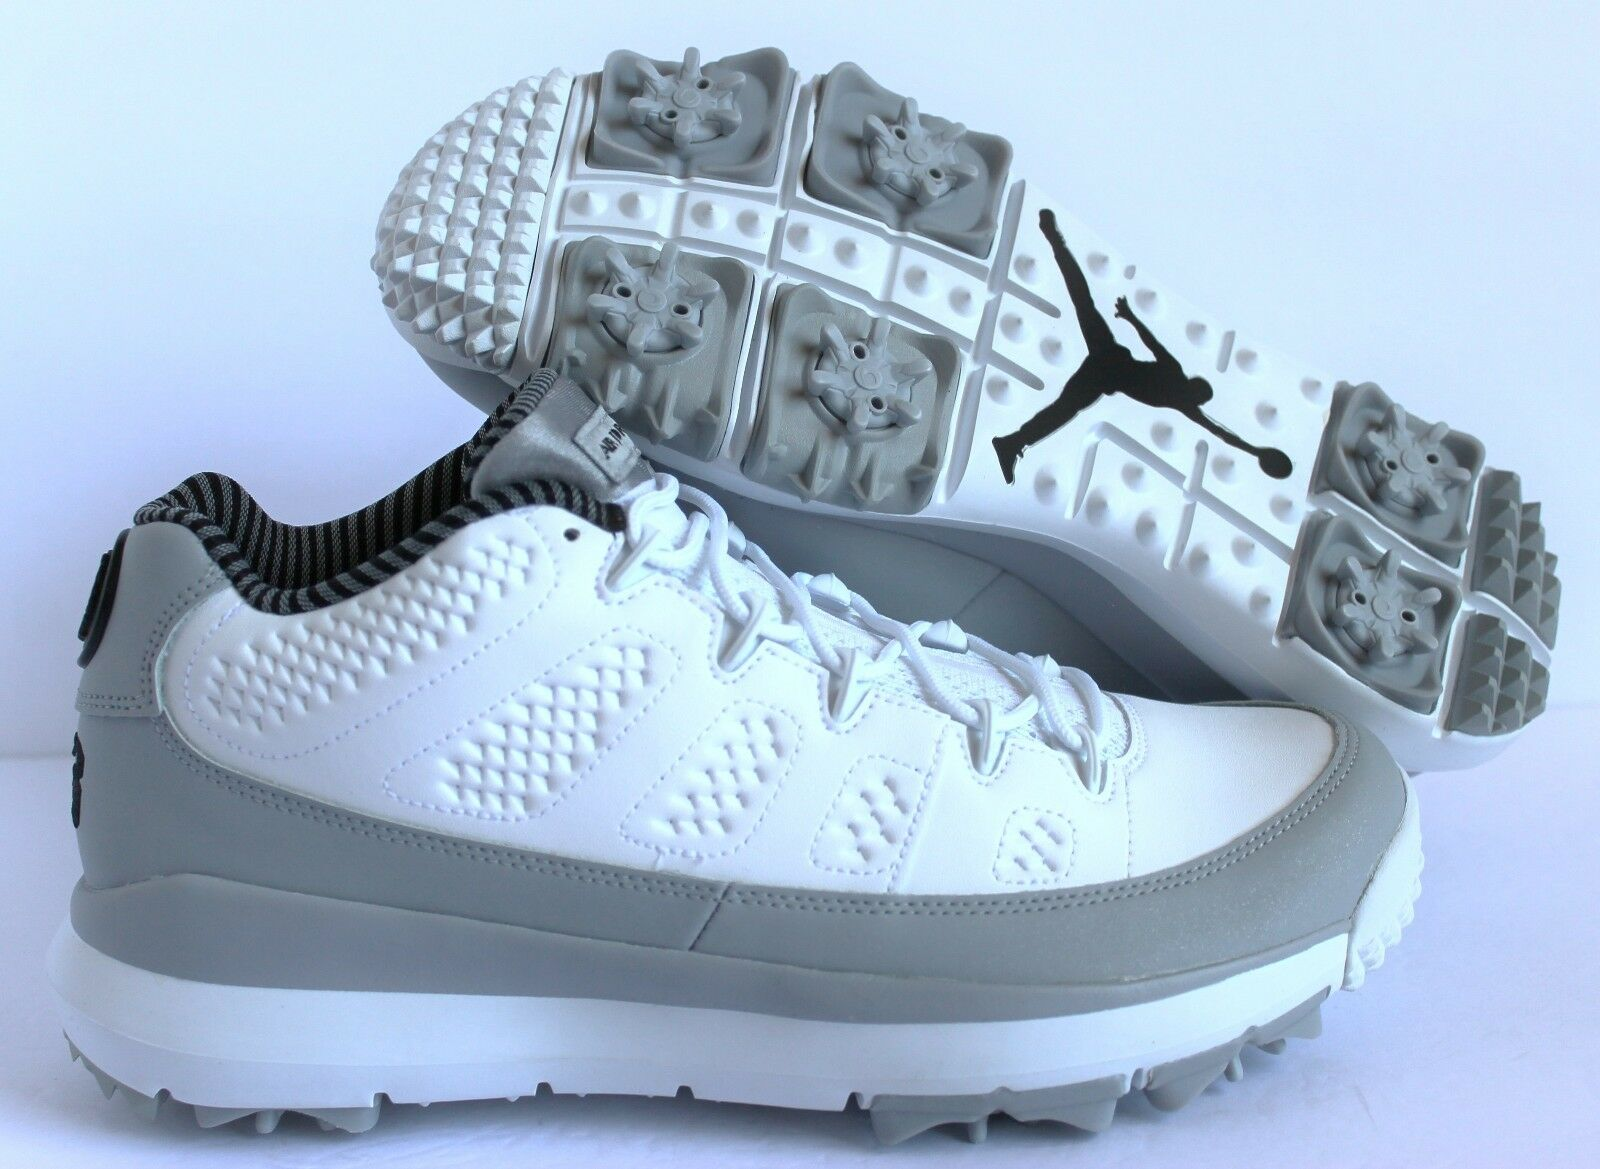 NIKE AIR JORDAN IX 9 RETRO GOLF WHITE-BLACK-WOLF GREY SZ 9.5 [833798-103]